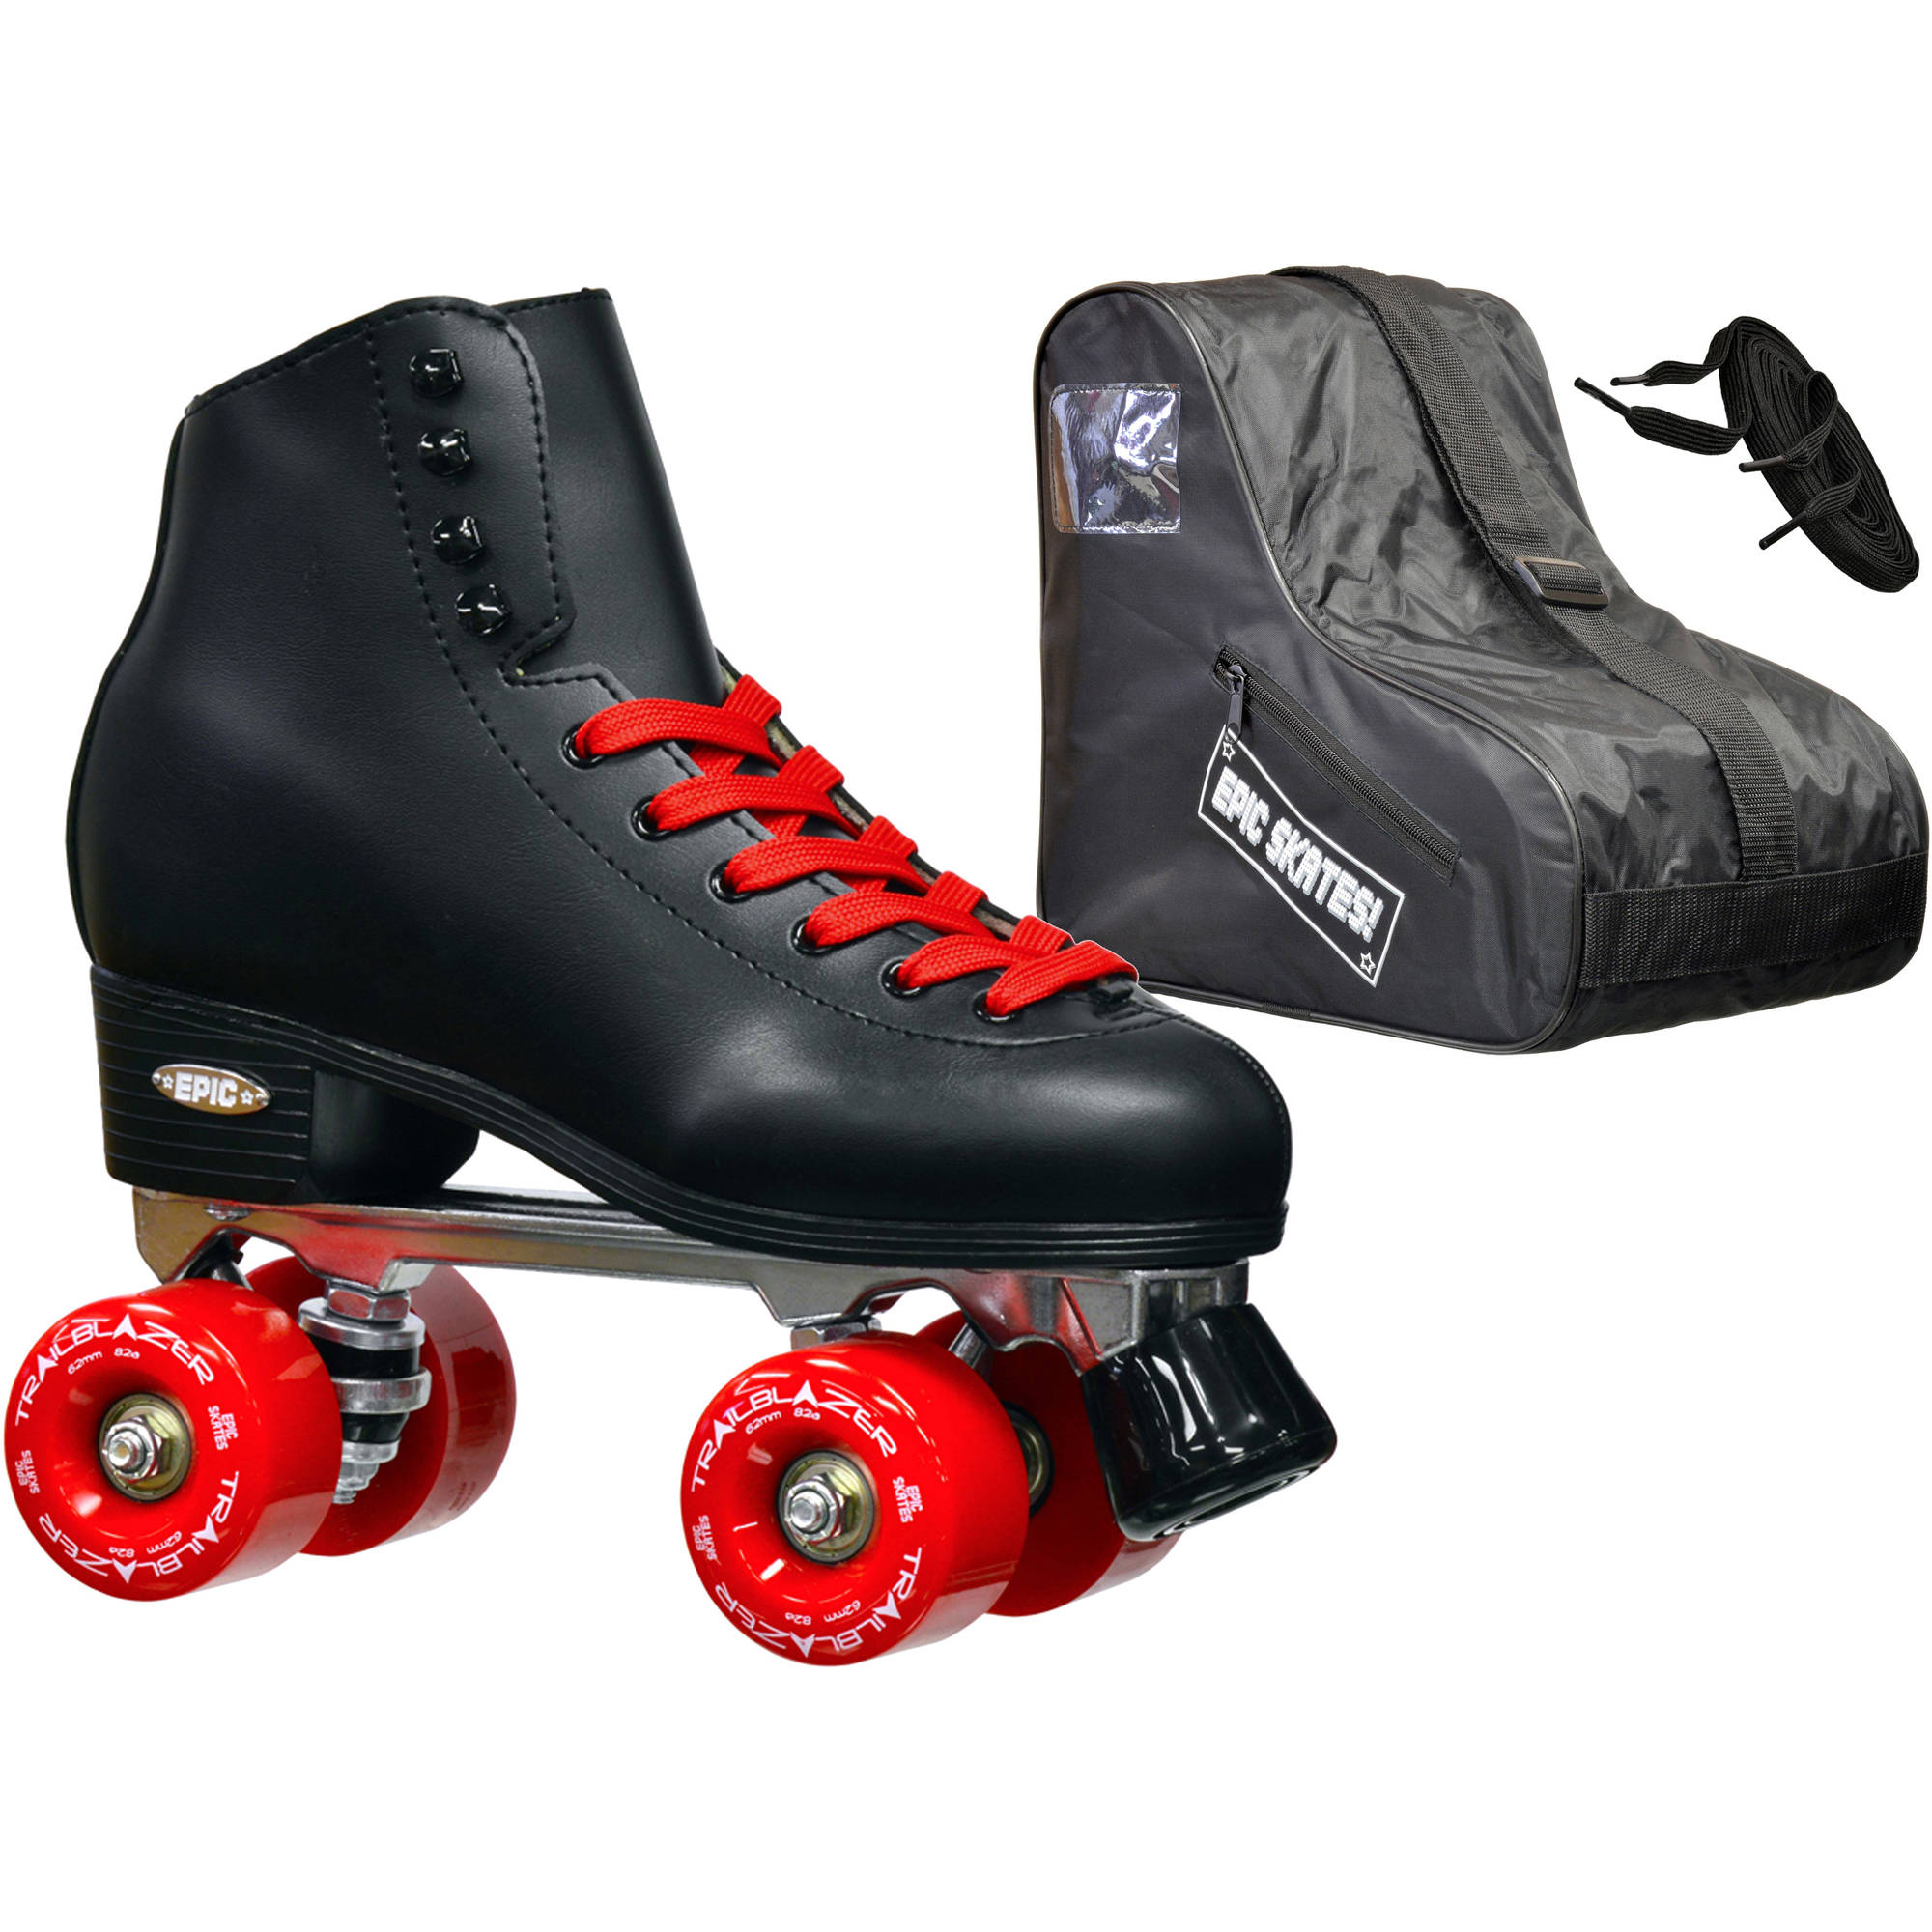 Epic Classic Black and Red Quad Roller Skates Package